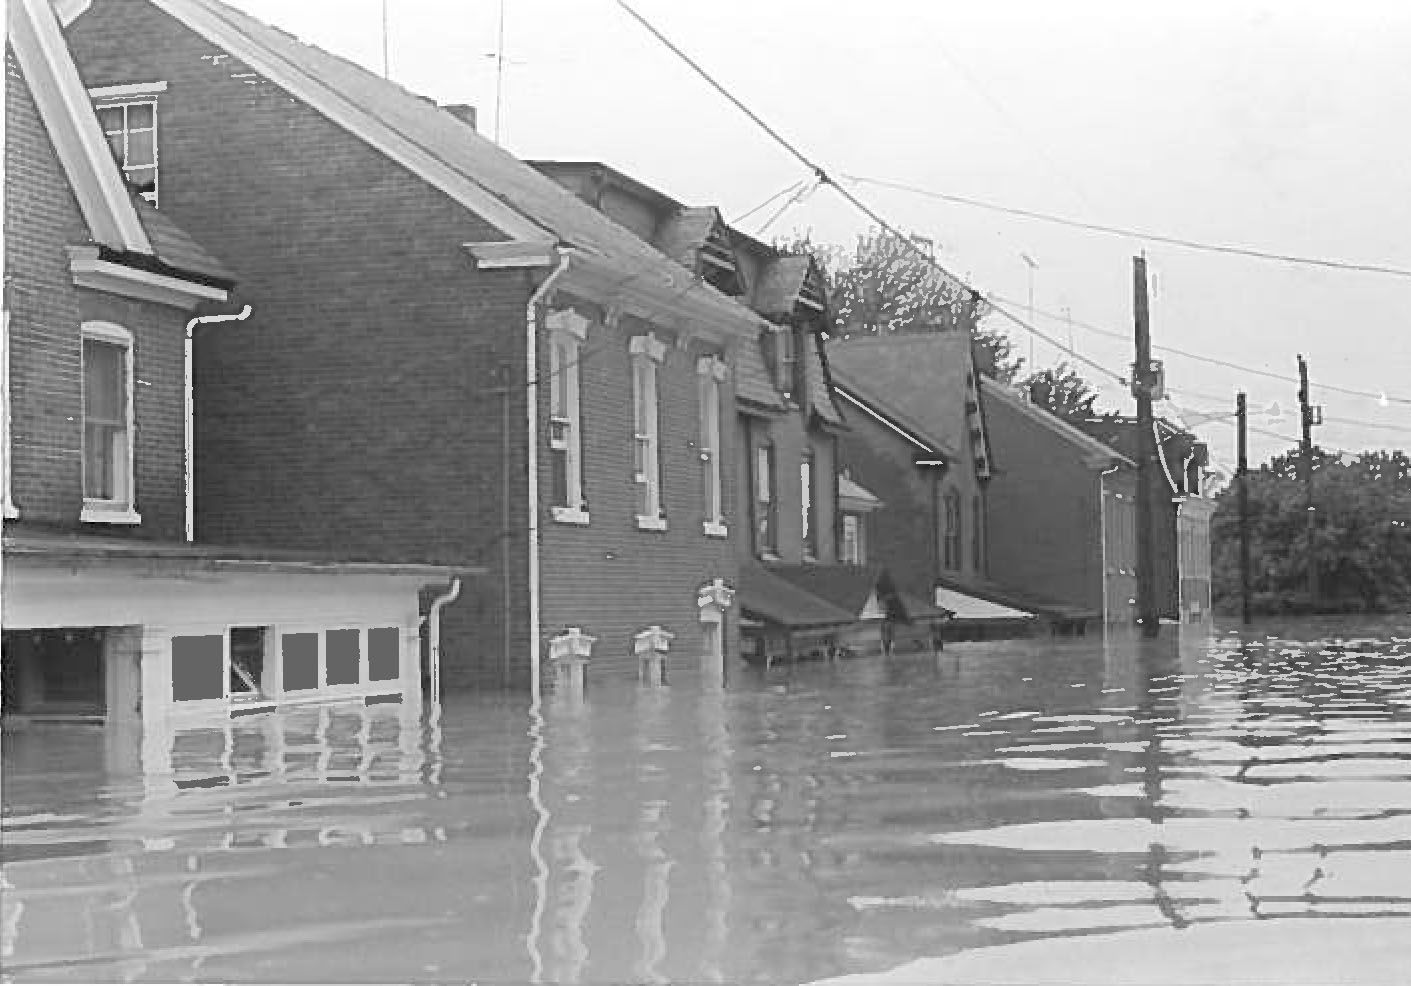 Walnut Street In Pottstown Pa Flooded During Hurricane